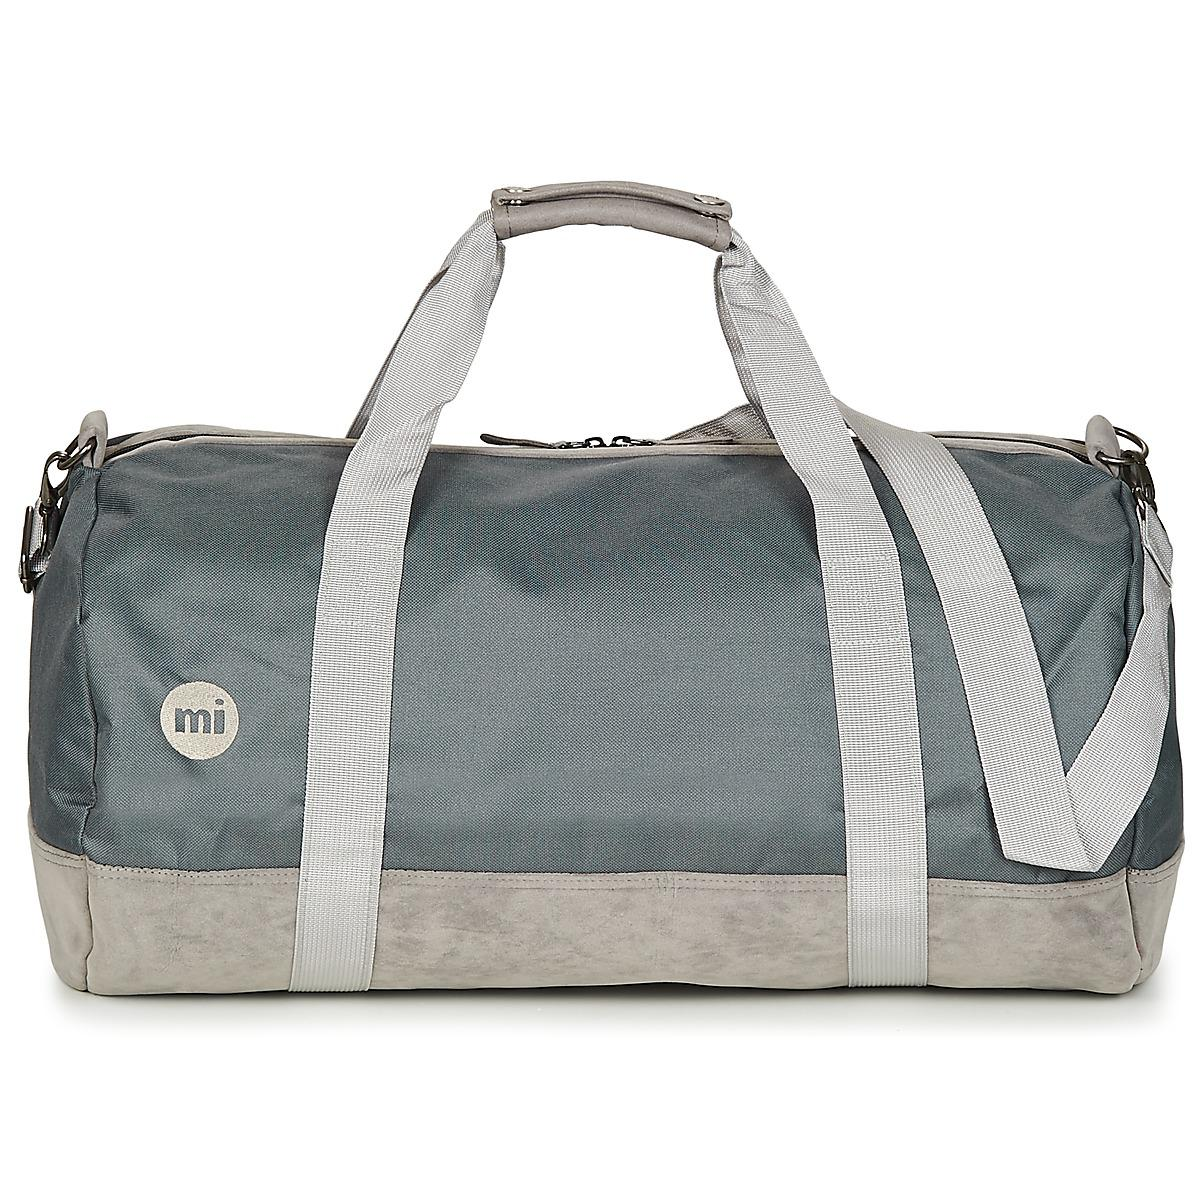 8f1939ce303c Mi-Pac Duffel Classic Men s Sports Bag In Grey in Gray for Men - Lyst